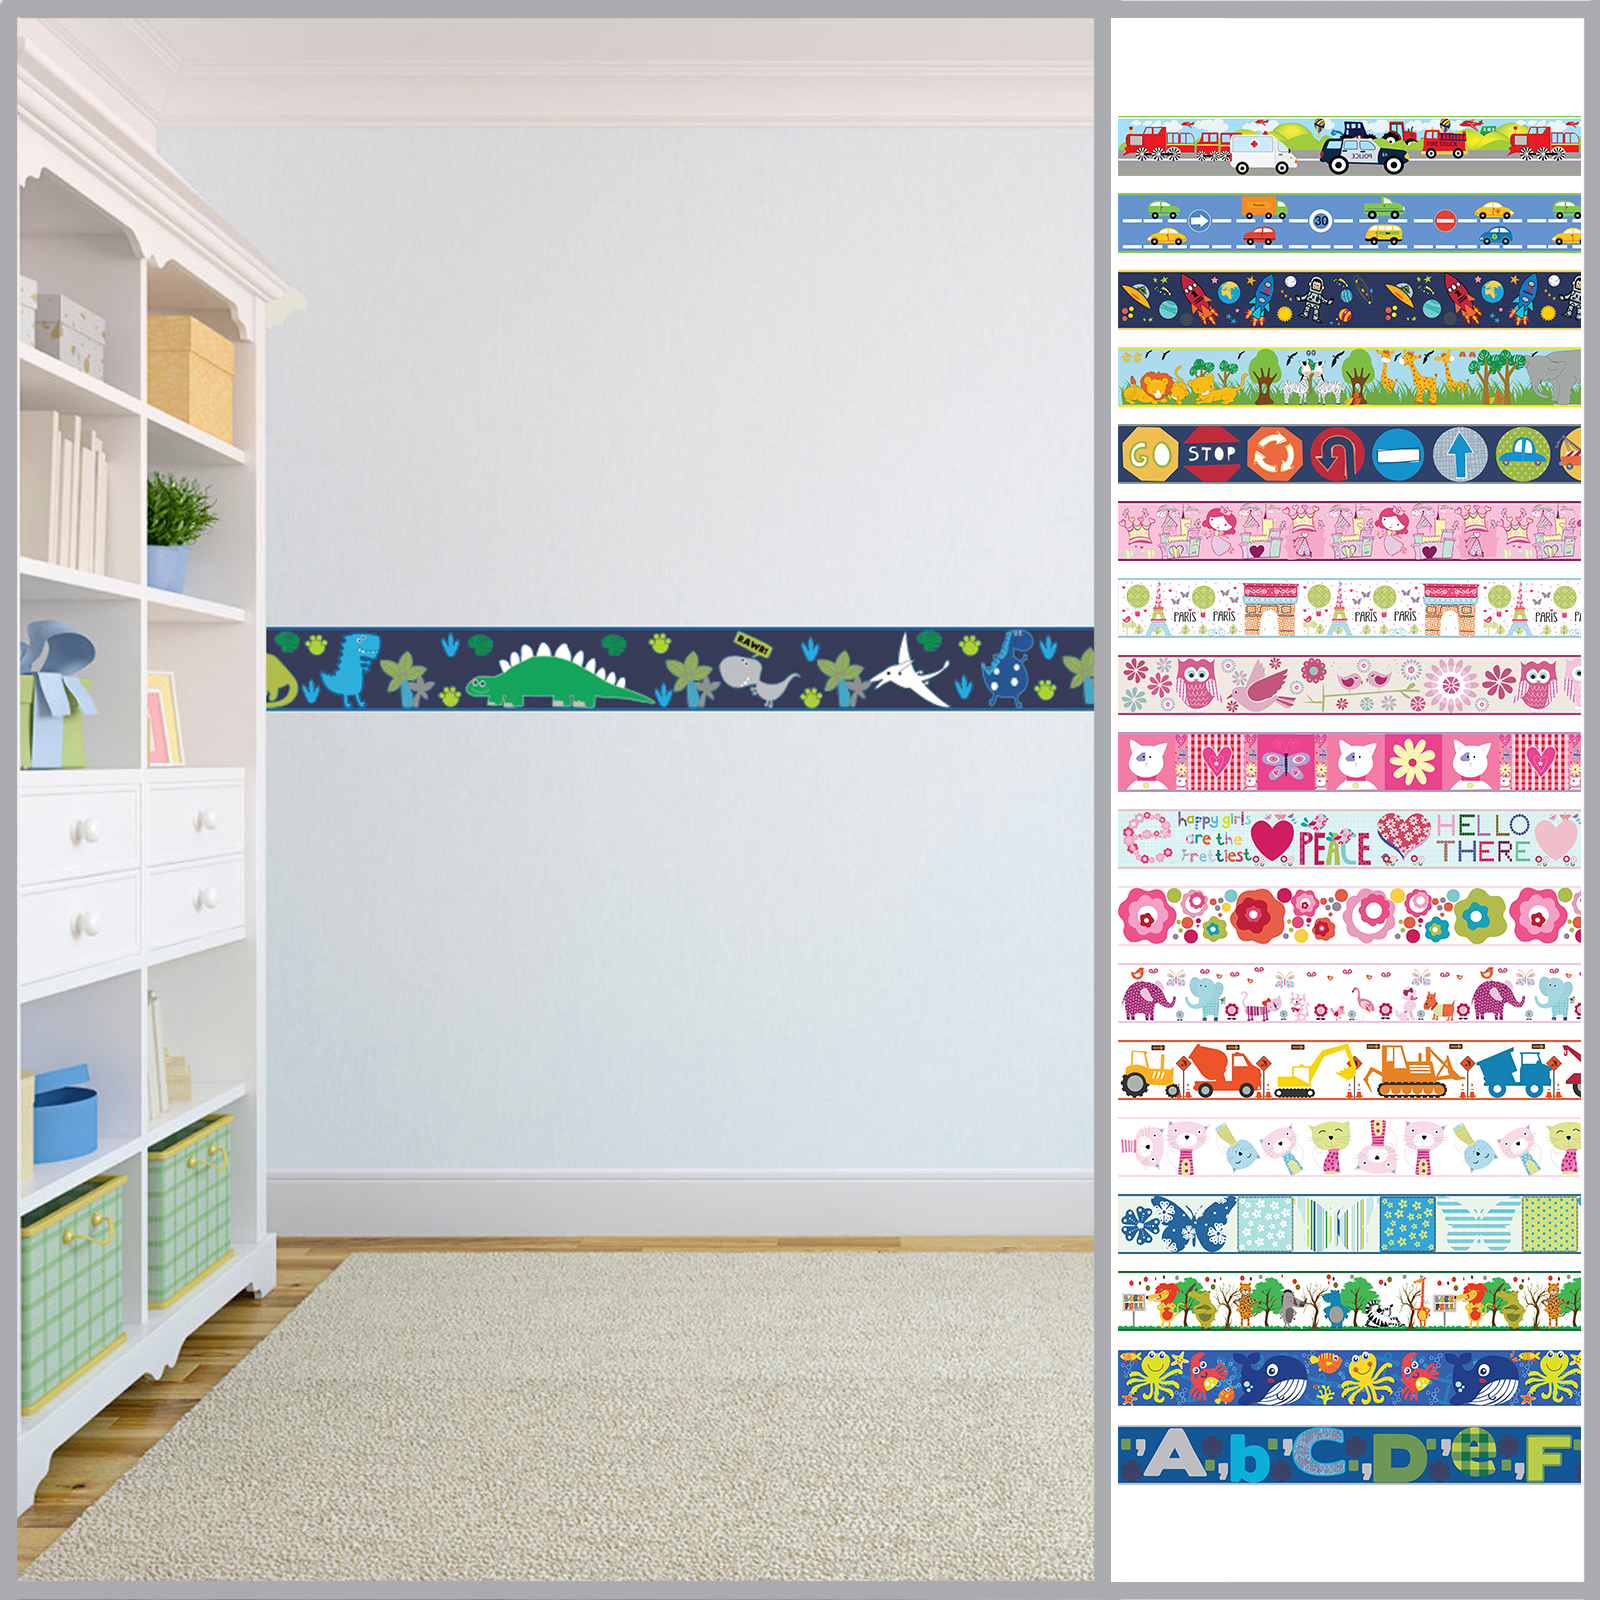 wallpaper borders children\u0027s kids nursery boys girls bedroom wallwallpaper borders children\u0027s kids nursery boys girls bedroom wall self adhesive